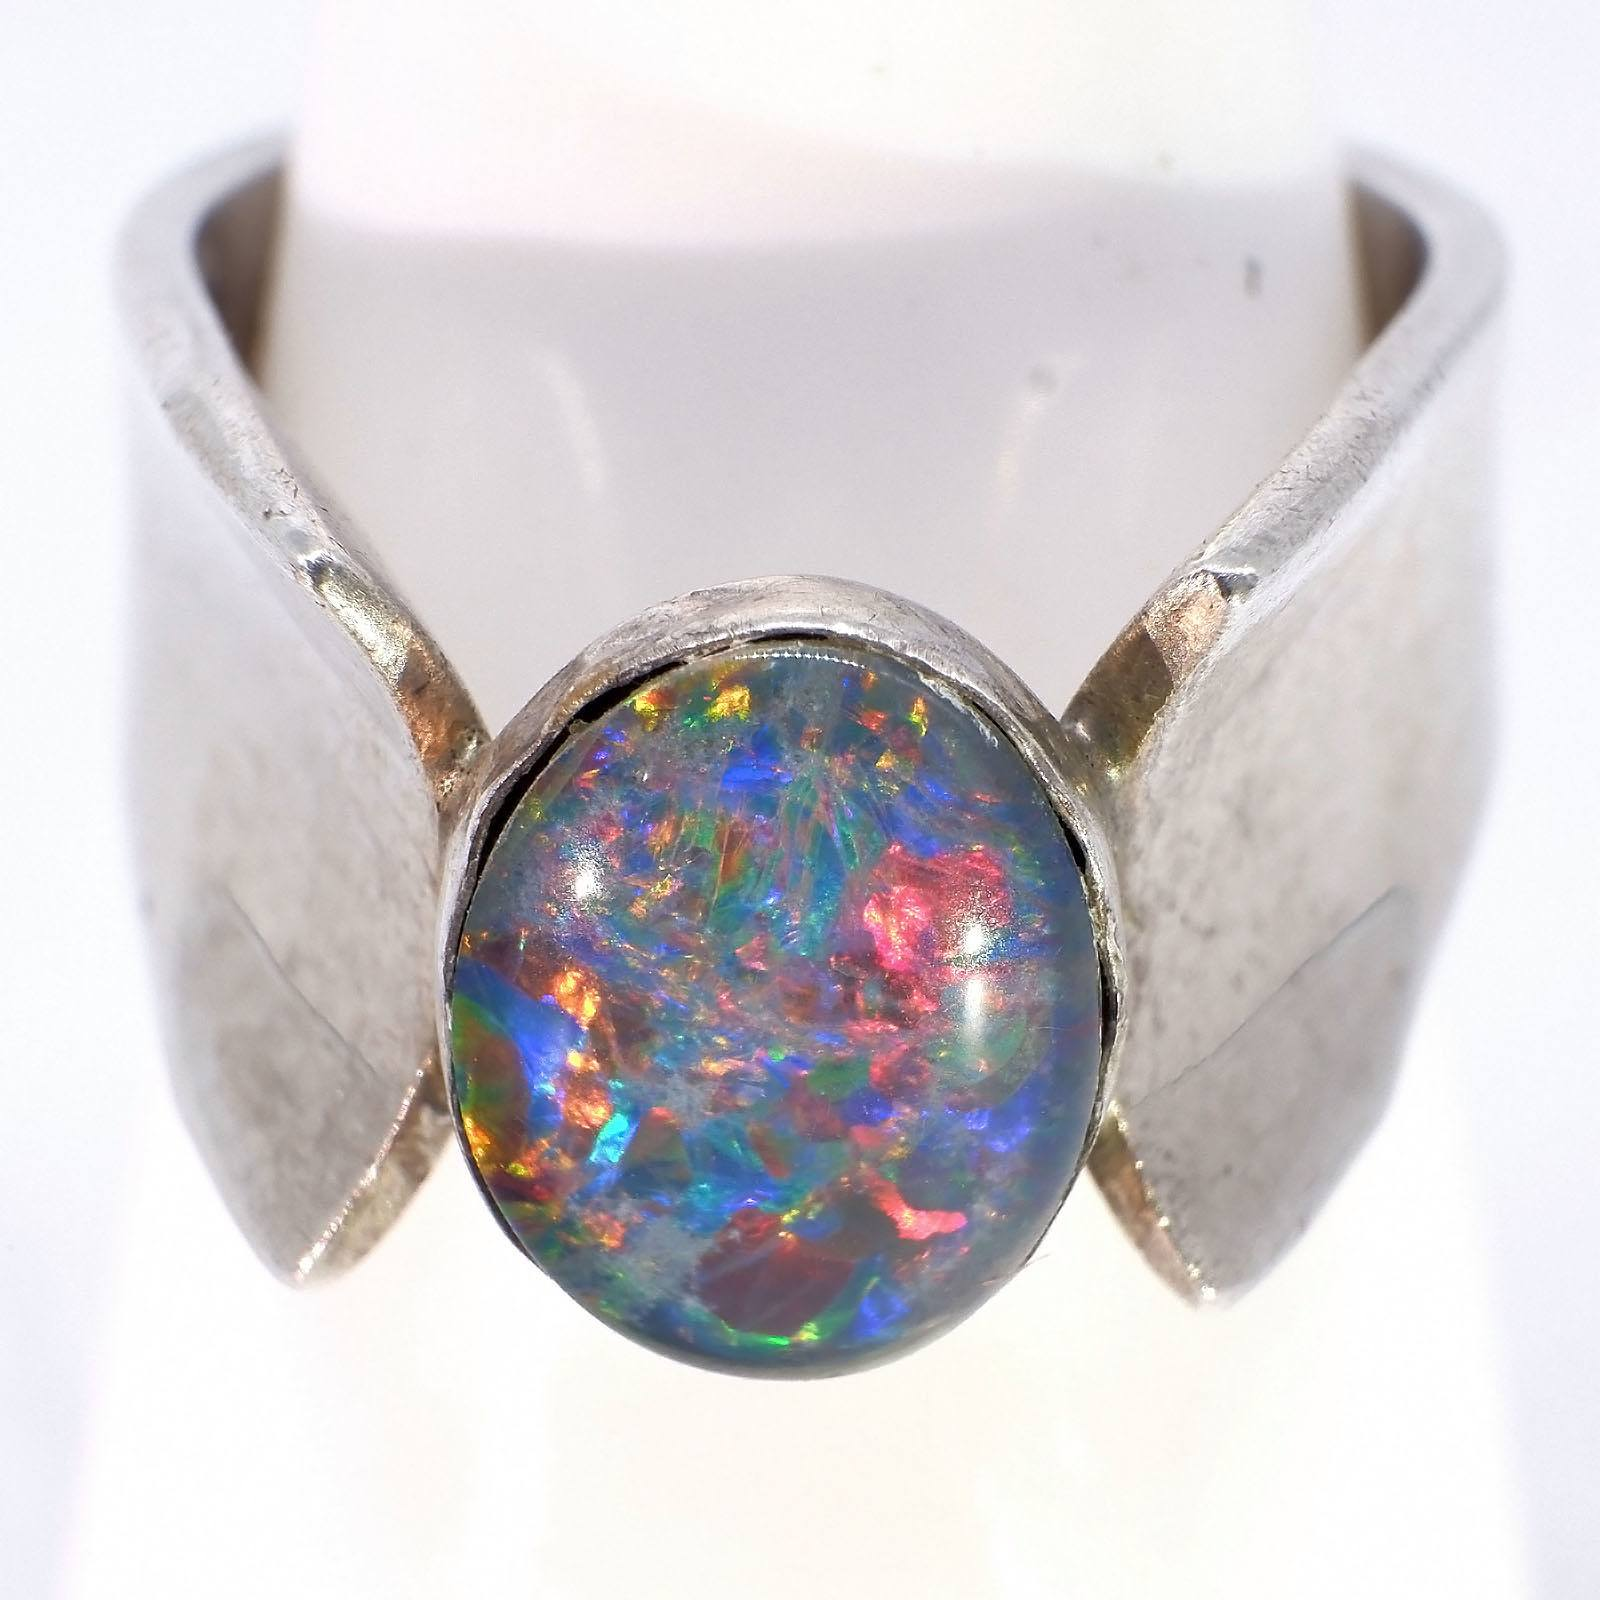 '18ct White Gold Ring With Oval Black Opal Triplet, 6.4g'